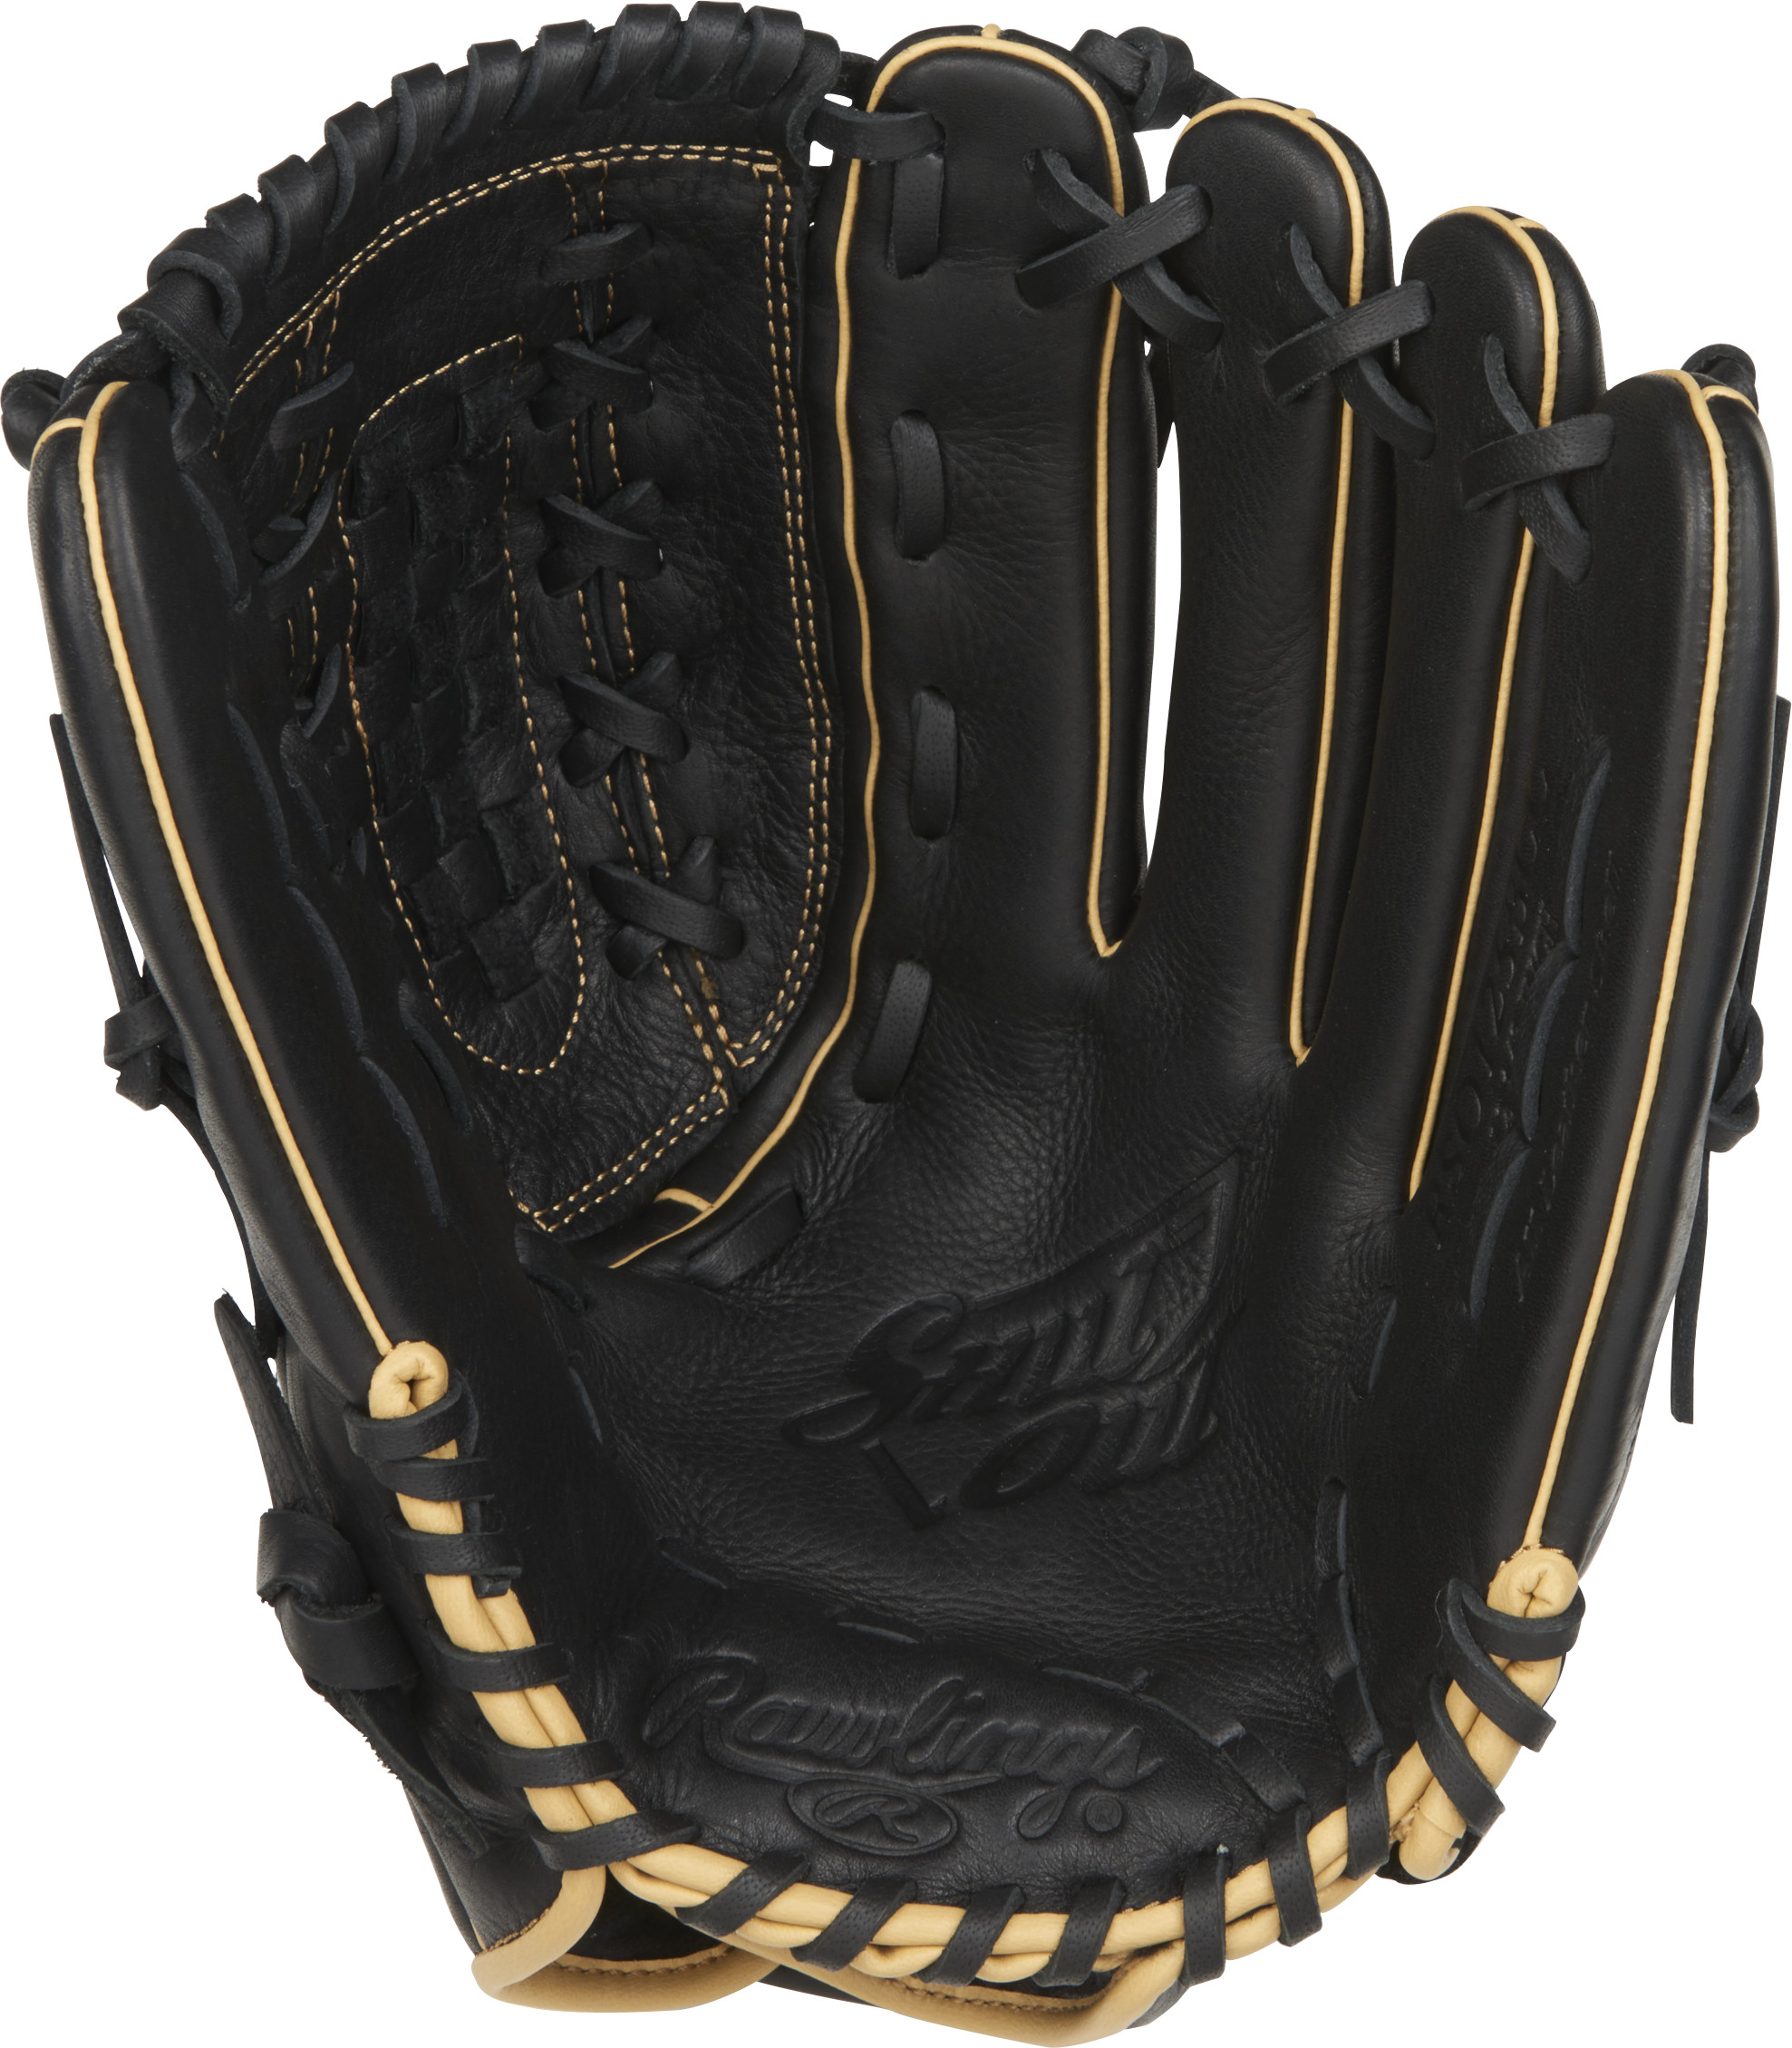 http://www.bestbatdeals.com/images/gloves/rawlings/RSO125BCC-1.jpg